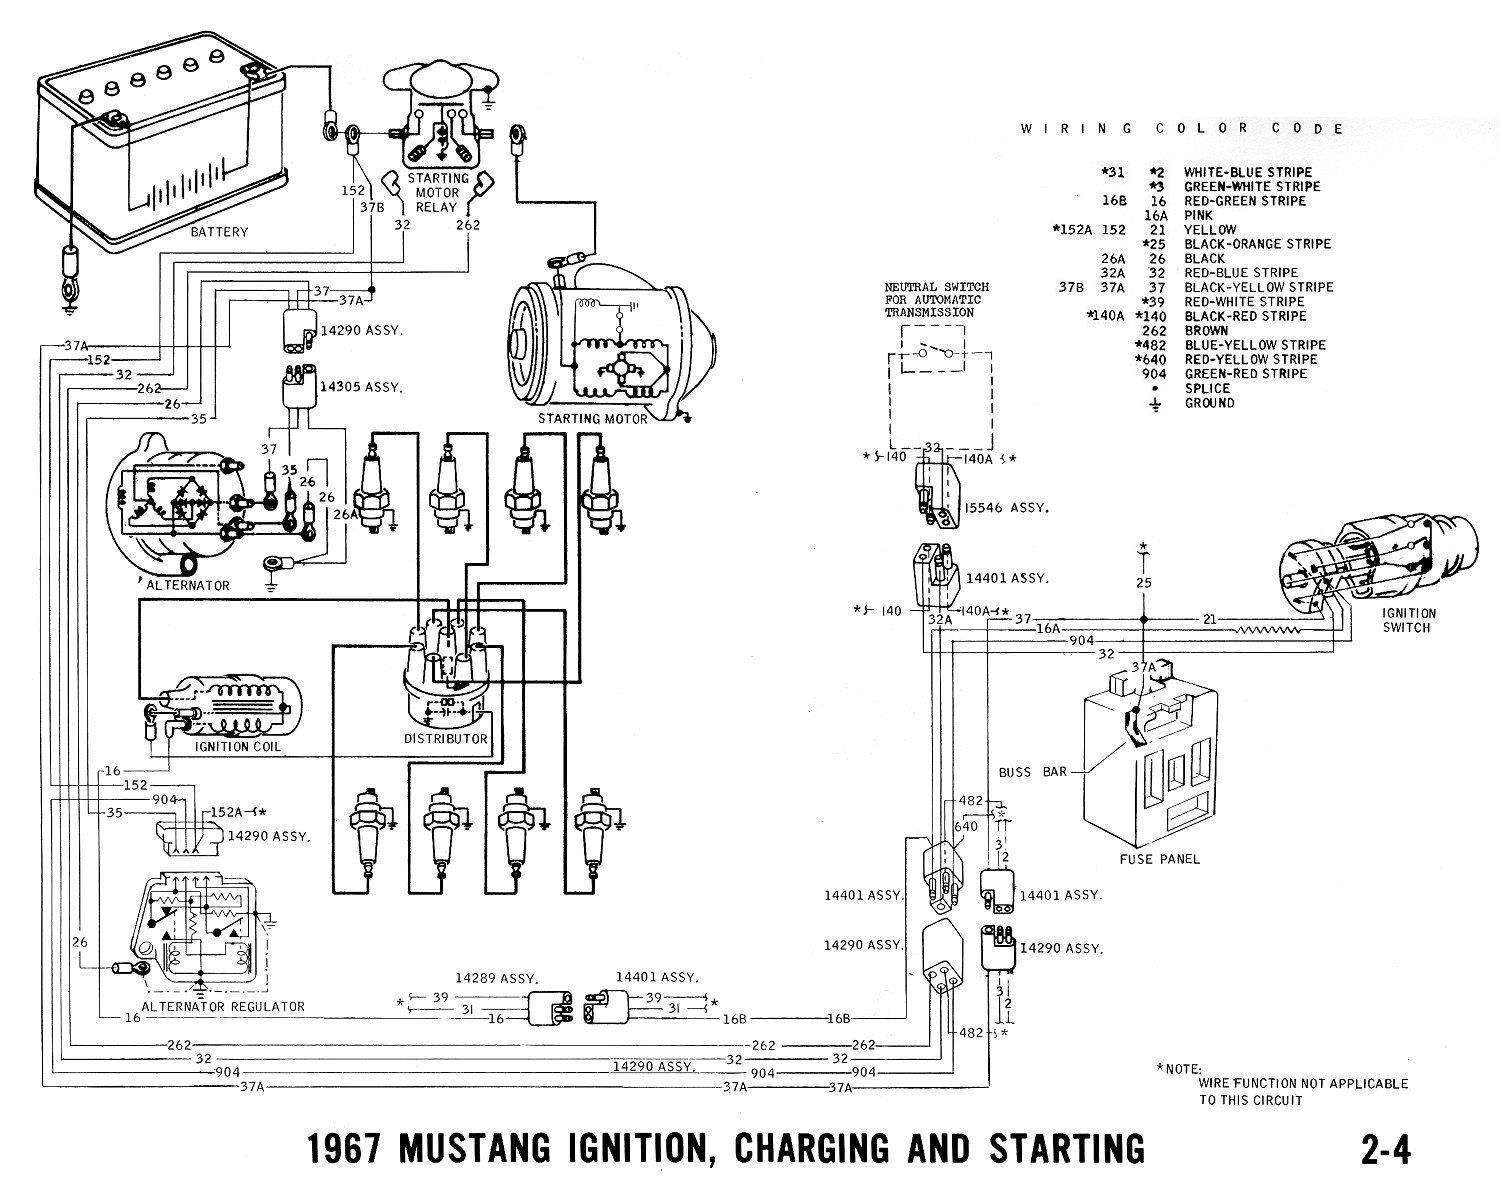 1967 mustang alternator wiring diagram Collection-1967 Mustang Alternator Wiring Diagram Best Wiring 1967 ford Mustang Alternator Diagrams Starting Pleasing 4-n